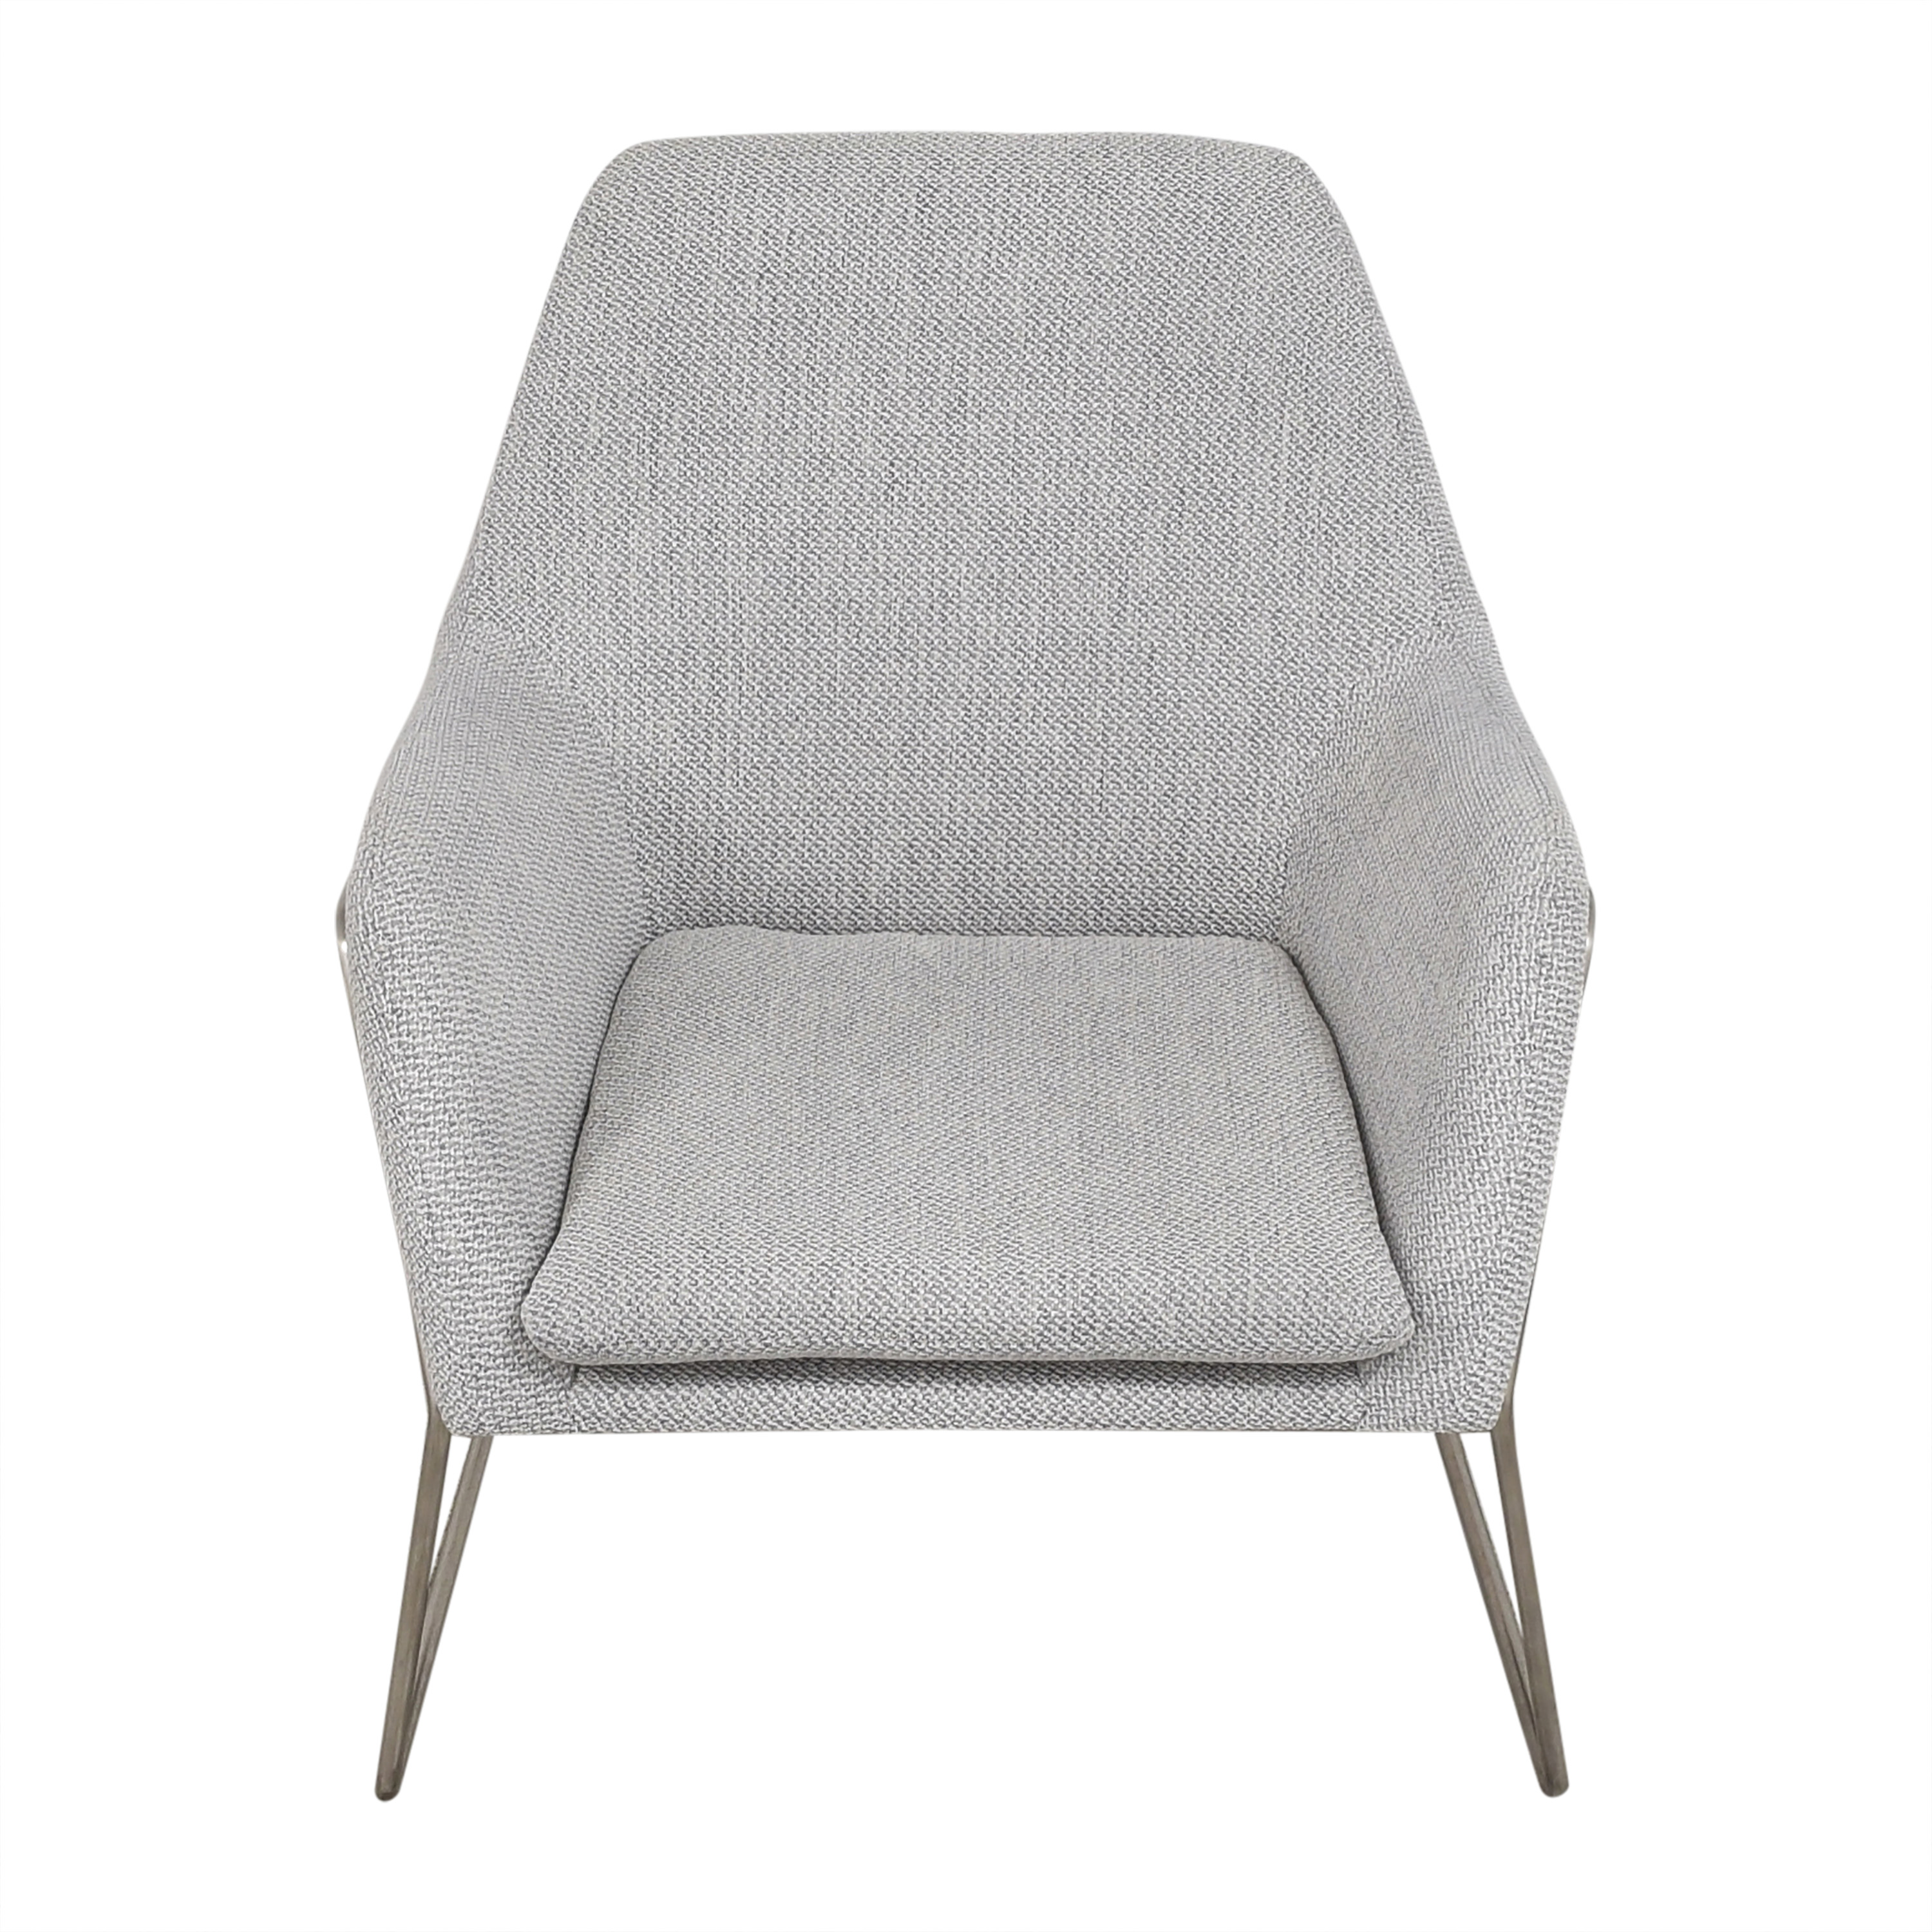 Article Article Forma Chair price